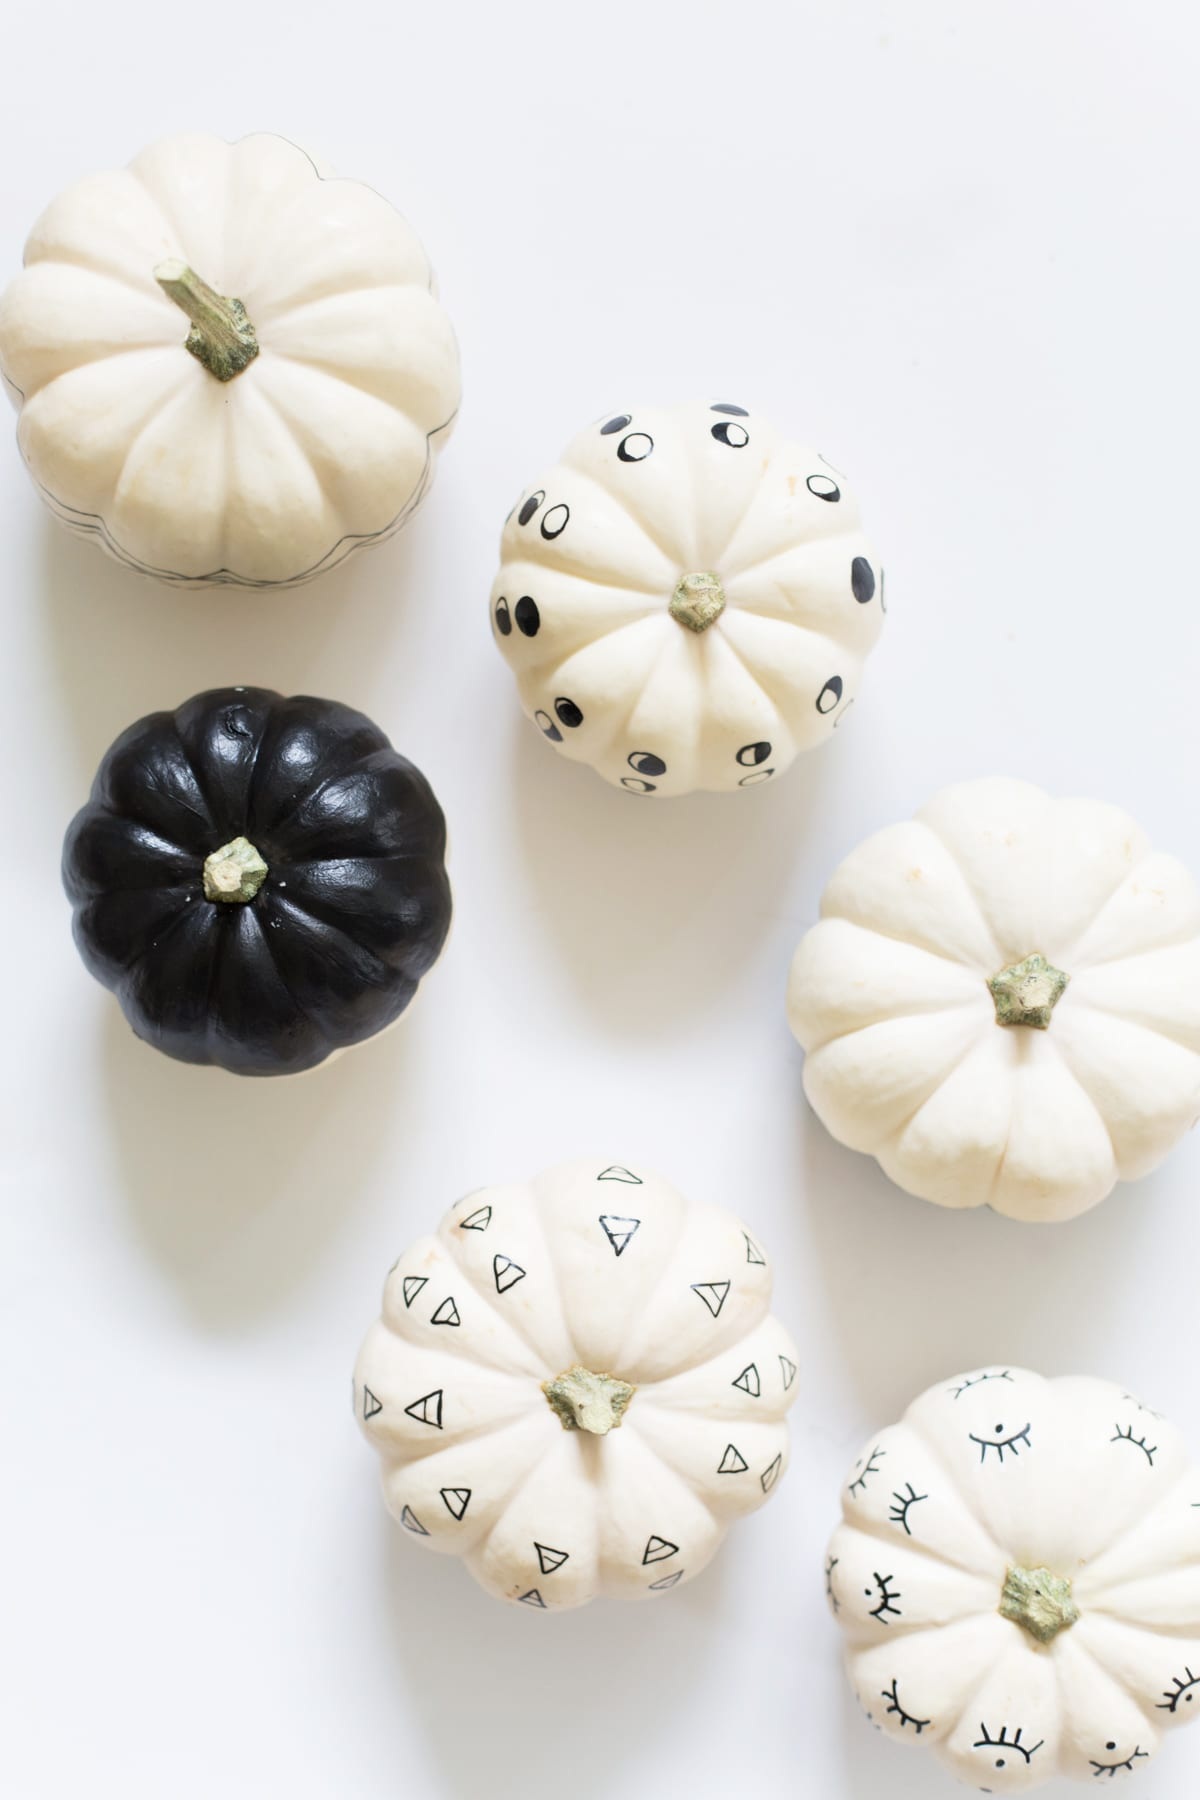 10 No-Carve Pumpkin Ideas You Need to Try this Halloween